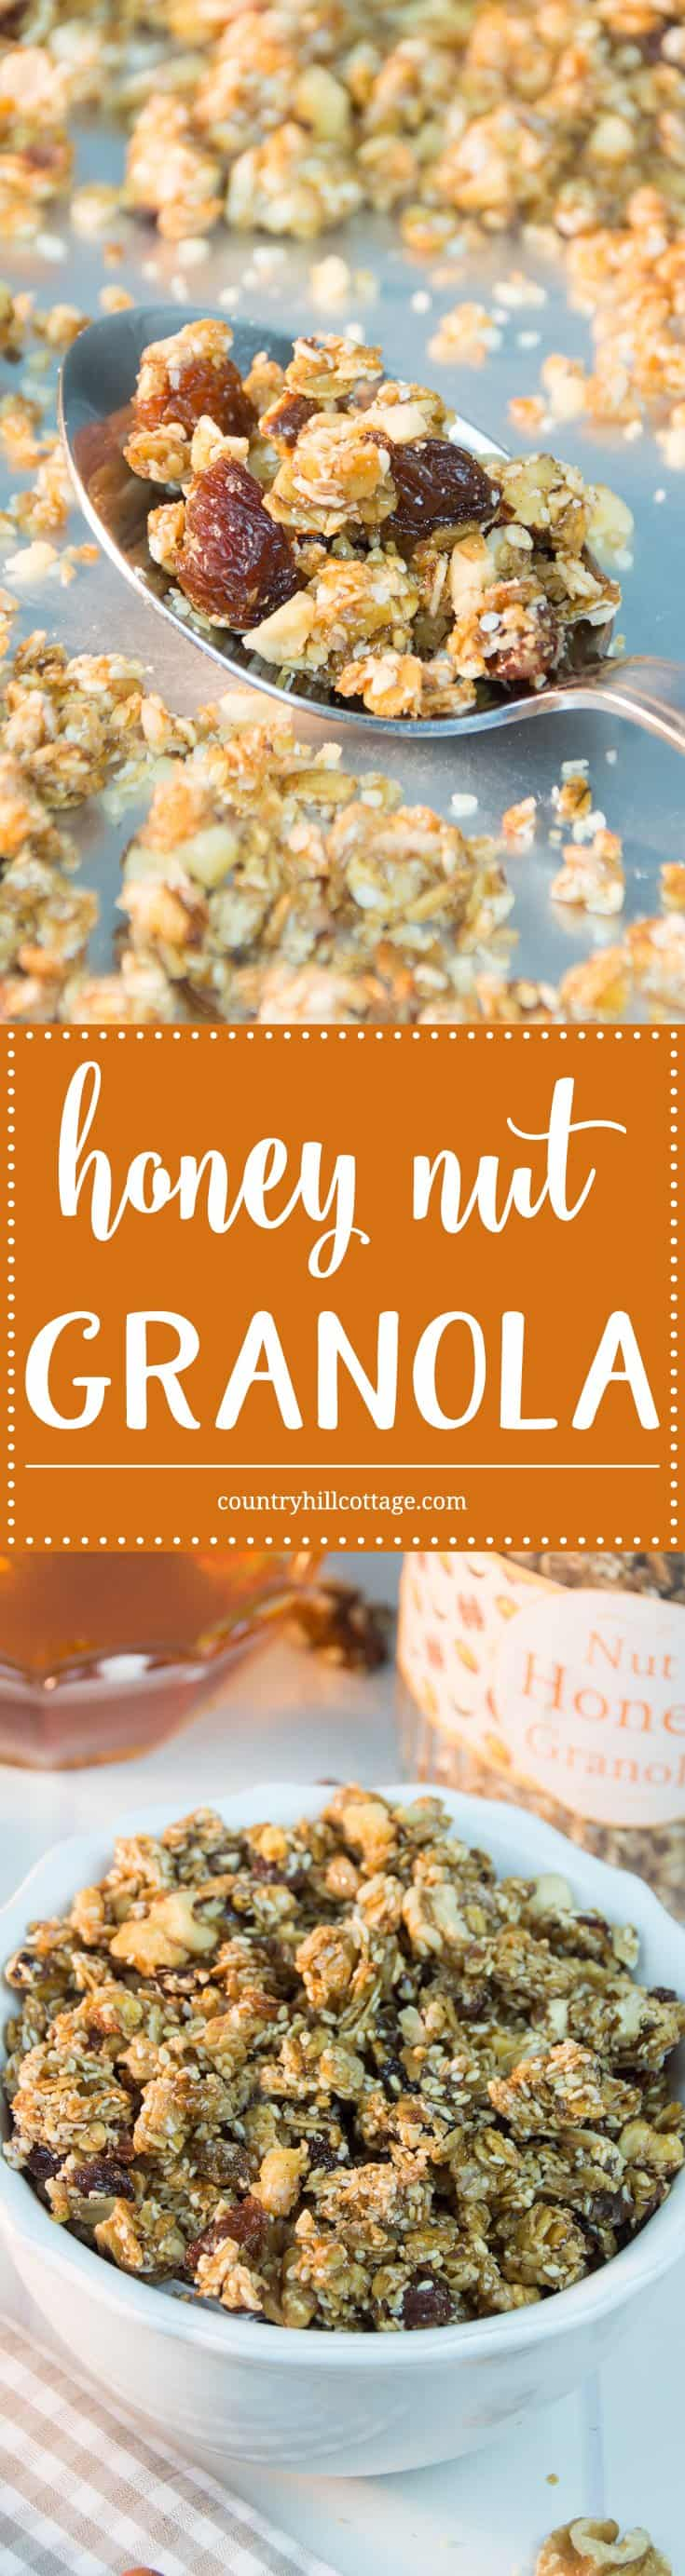 Our crunchy honey nut granola is sure to give a boost of energy in the morning and a nourishing school day breakfast for kids. A delectable mix of nuts, oats, sesame seeds, and honey are roasted to crunchy-sweet perfection. | countryhillcottage.com